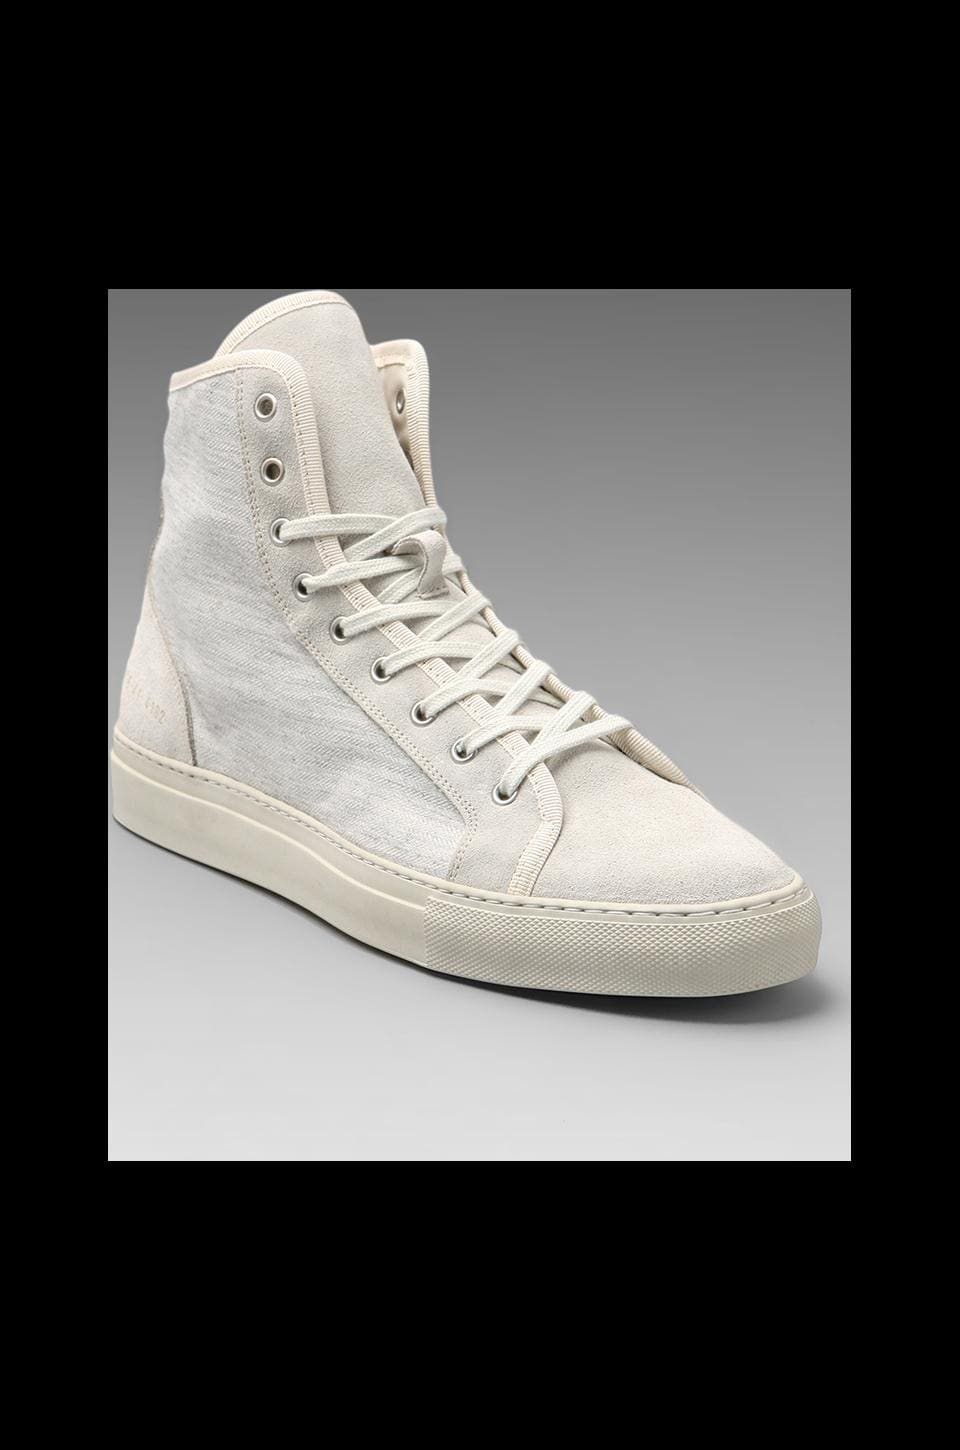 Common Projects Tournament High Special Edition in Off White